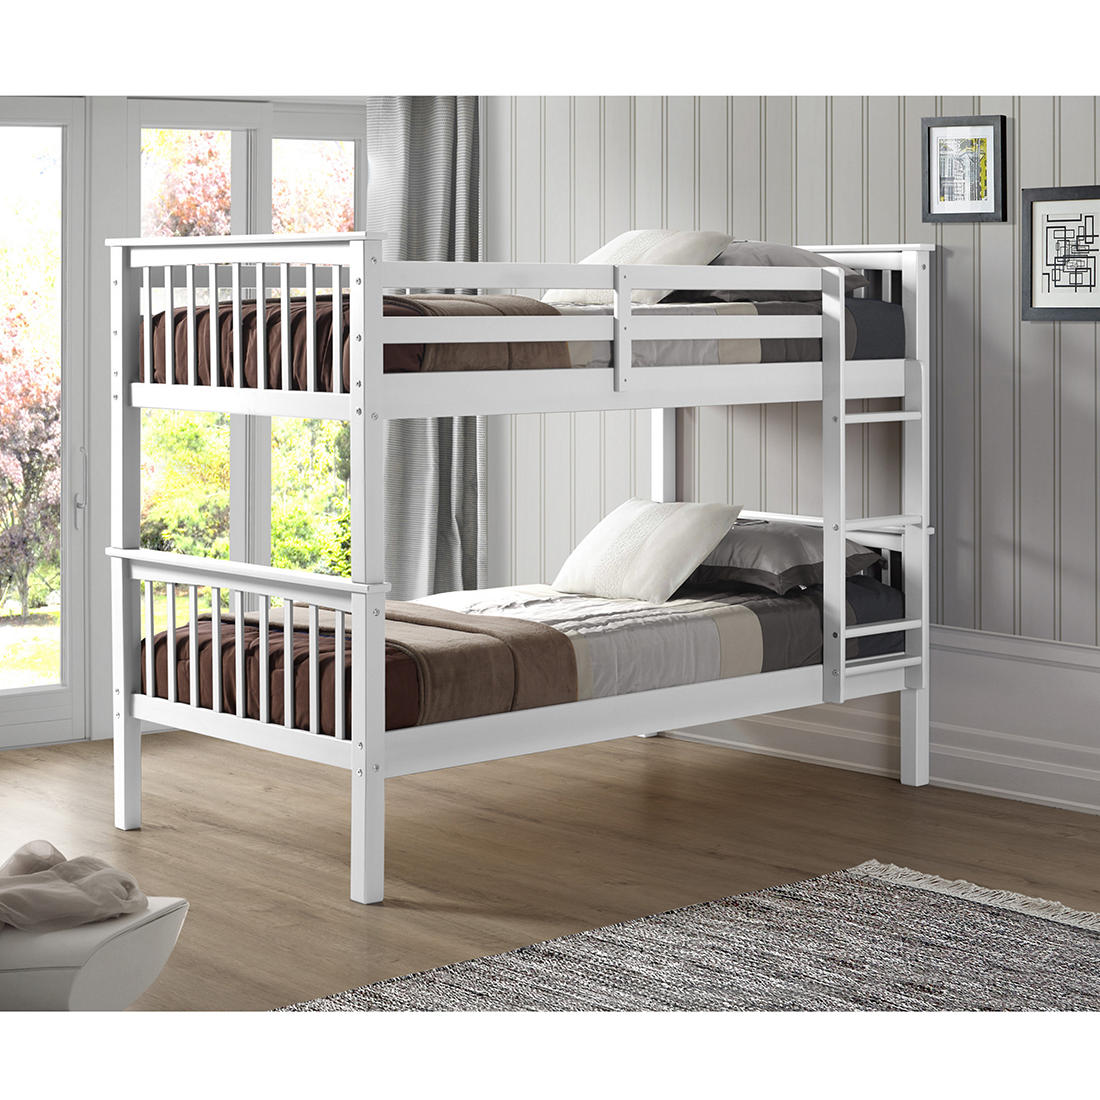 W Trends Twin Size Solid Wood Mission Bunk Bed White Bjs Wholesale Club